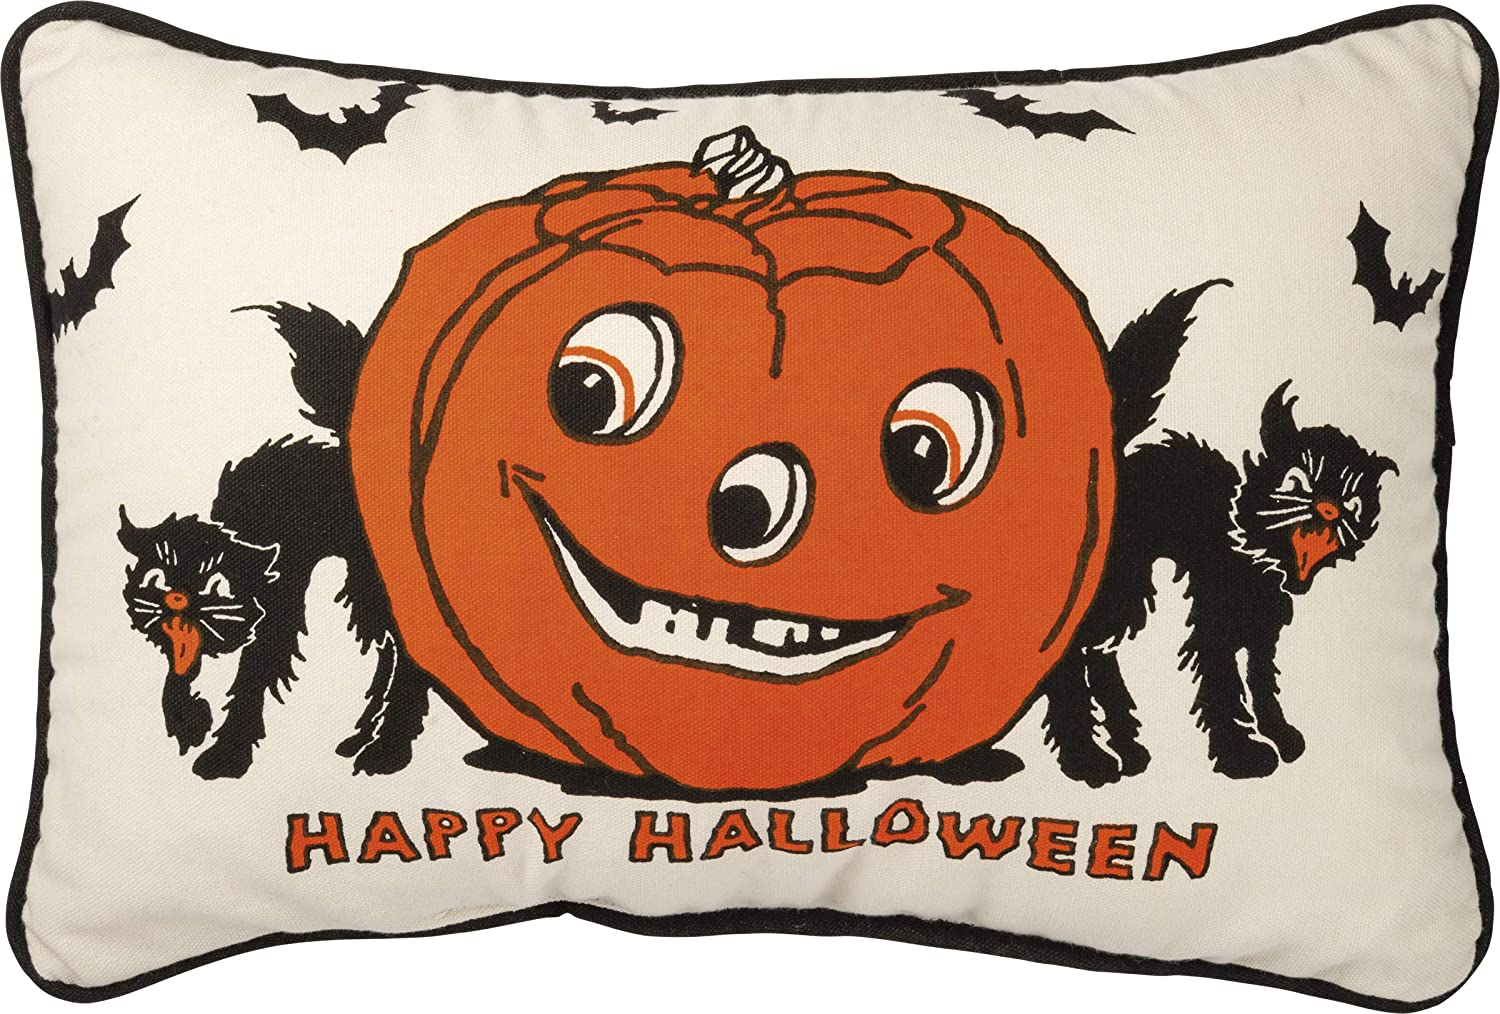 Primitives by Kathy Retro-Inspired Throw Pillow, 15 x 10-Inch, Happy Halloween